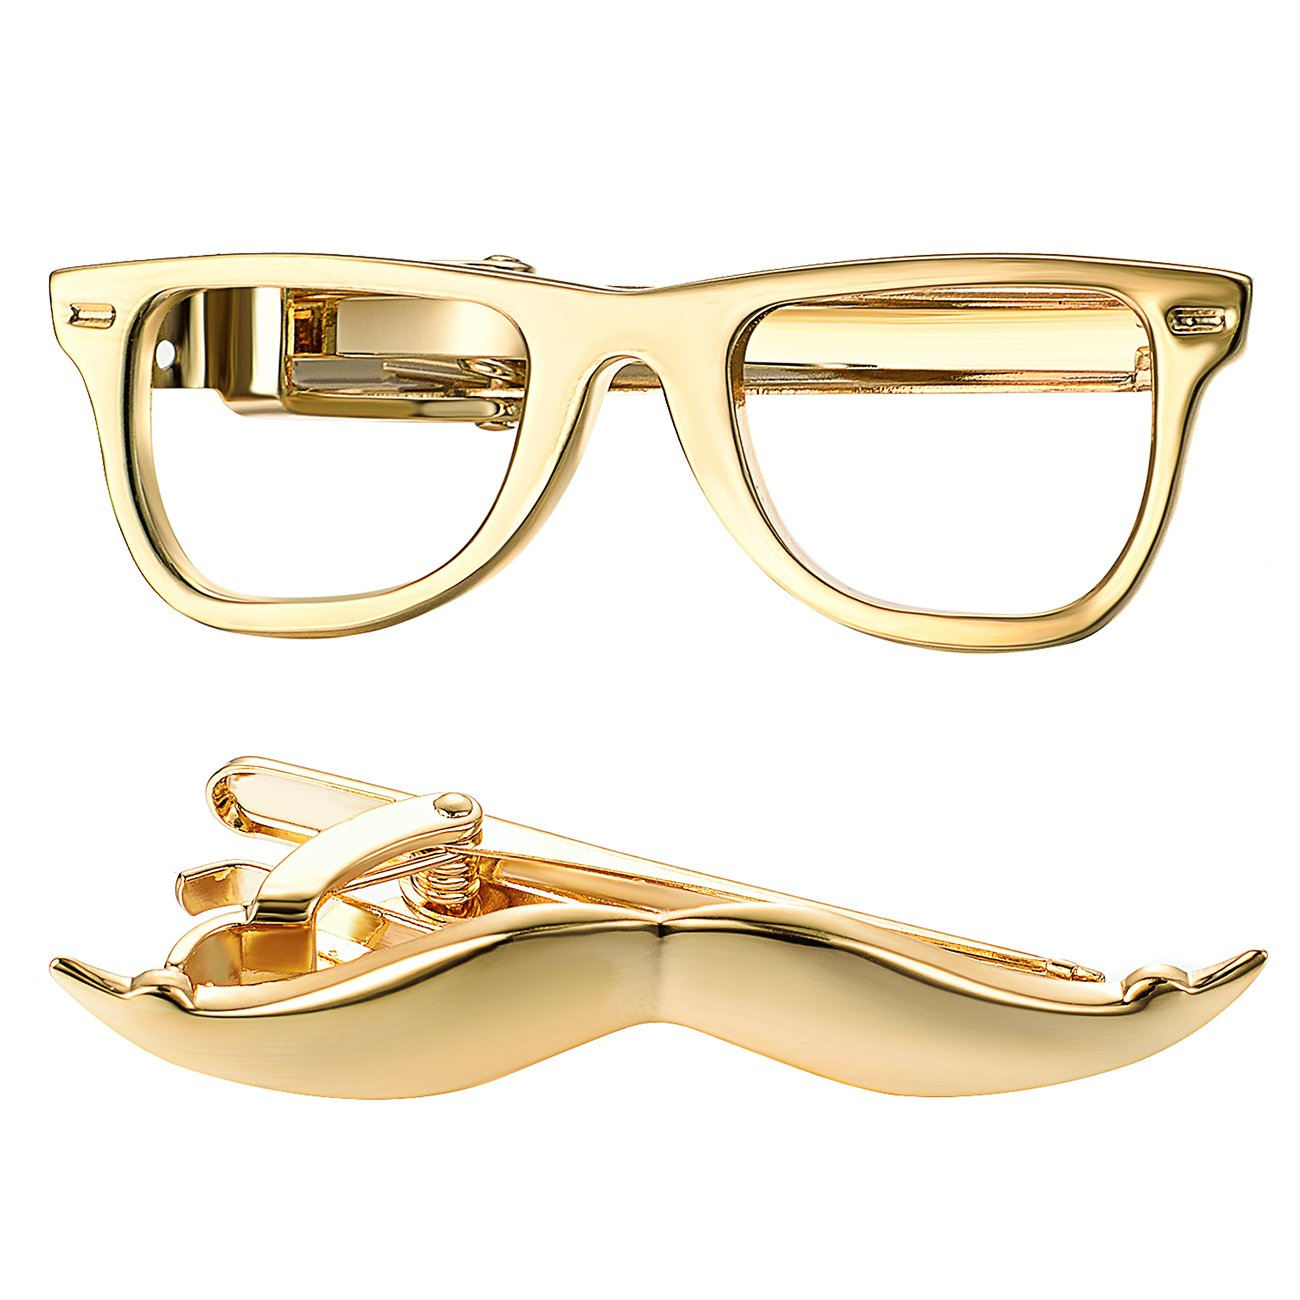 Yoursfs Tie Clip Glasses Moutache Set Gold Tie Bar Clips for Men Personaized Slim Tie Pins